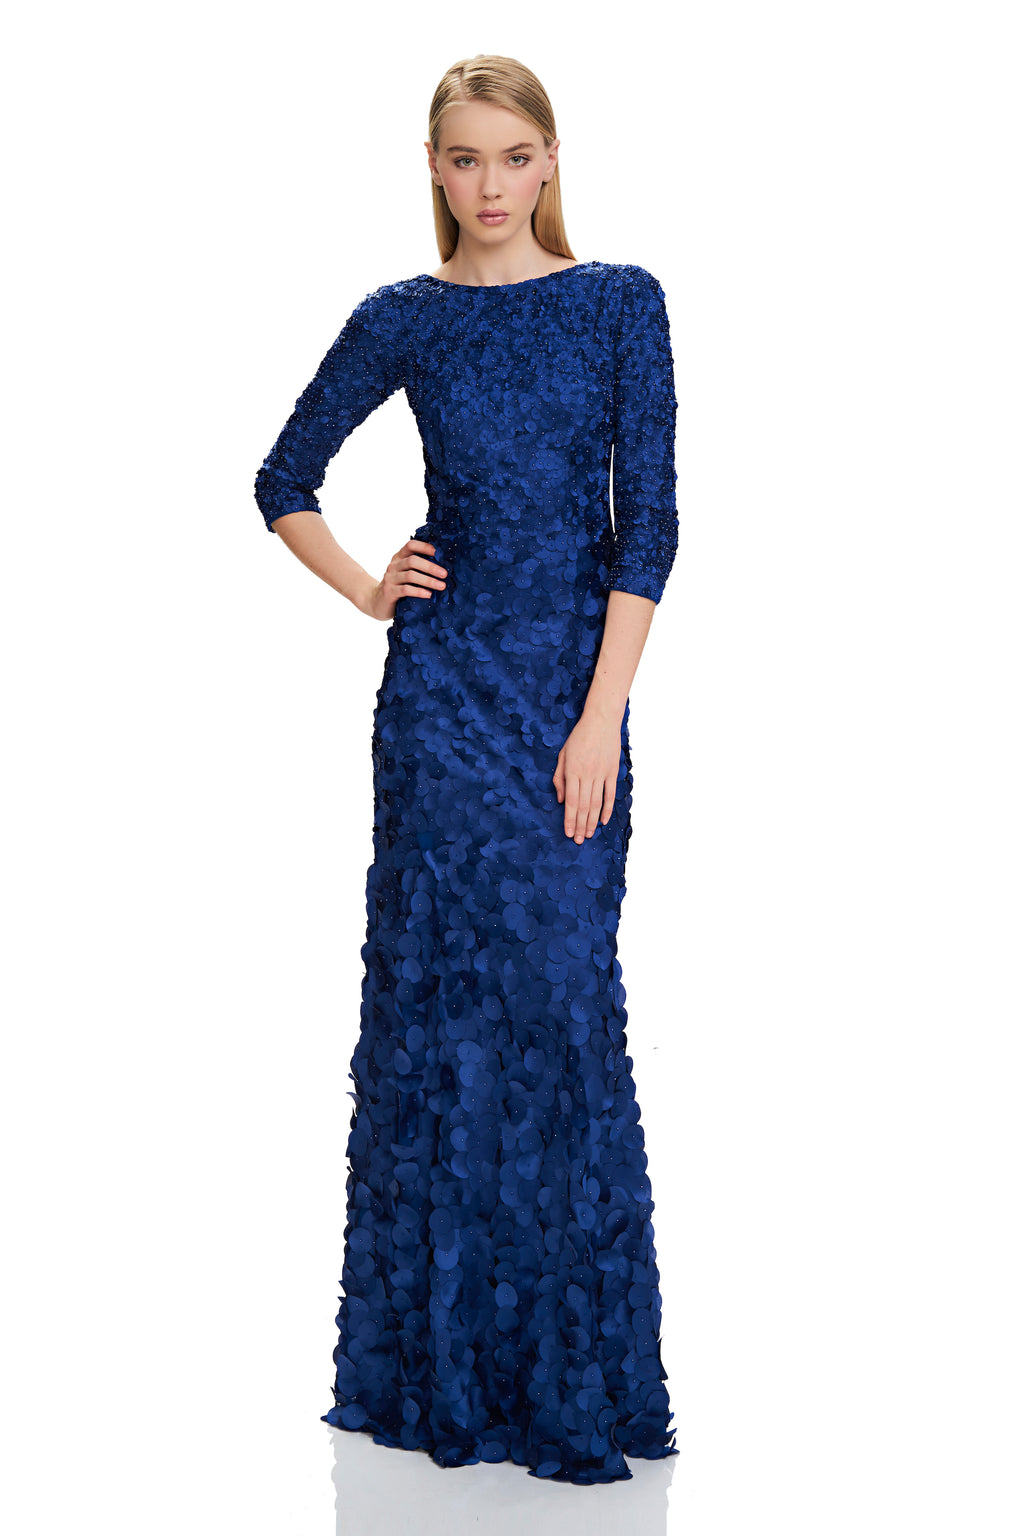 THEIA Mermaid Evening Gown. Robe designer Robe longue de soirée sirene